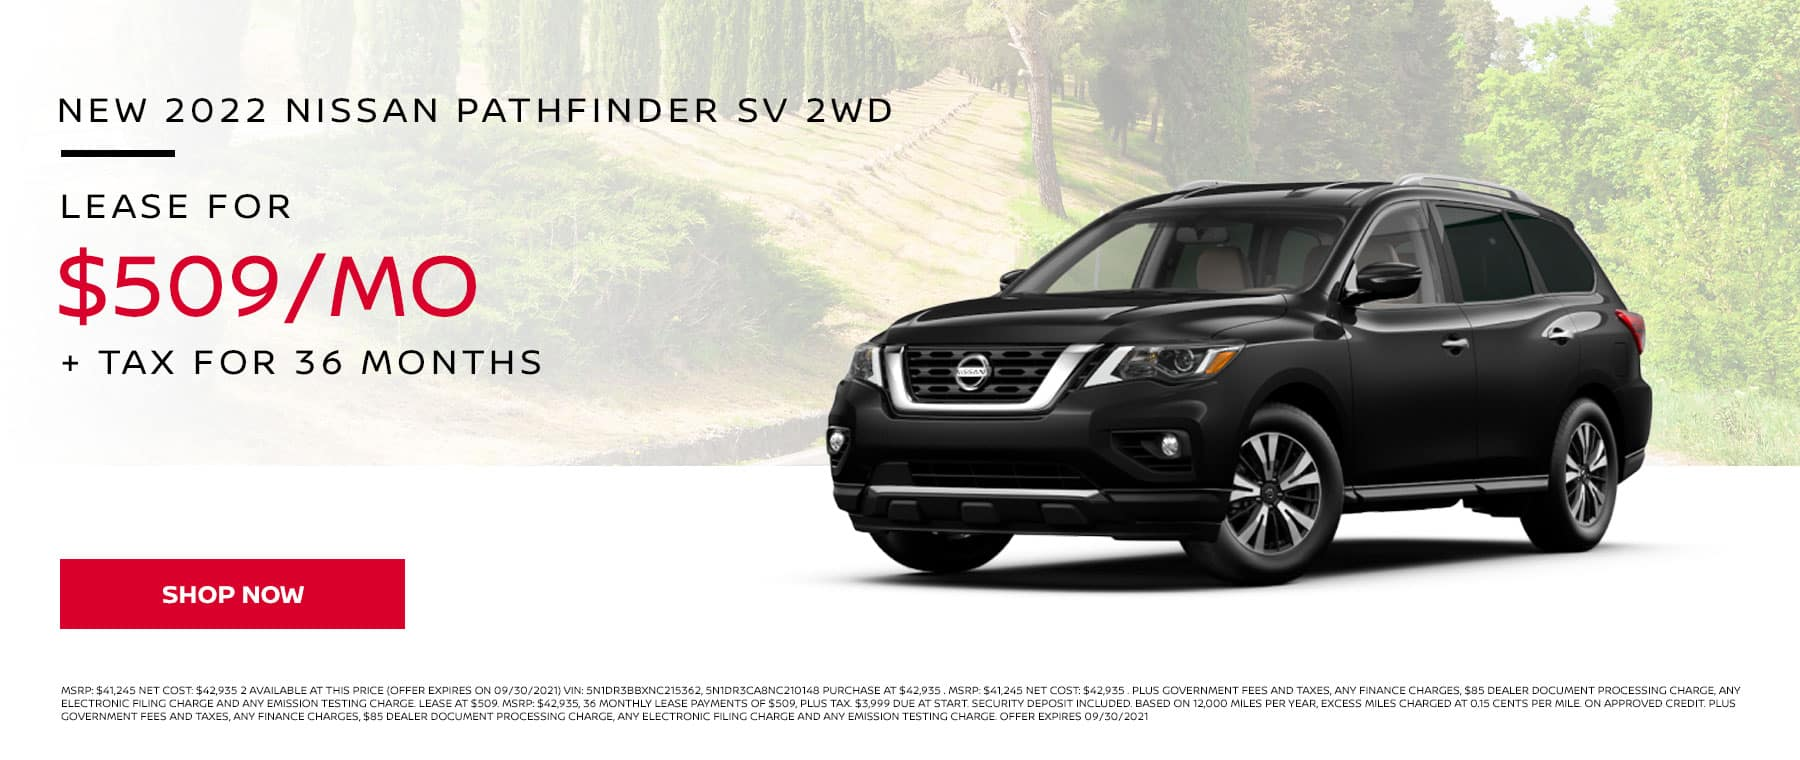 New 2022 Nissan Pathfinder SV 2WD, Lease for $509 Per Month + Tax for 36 Months